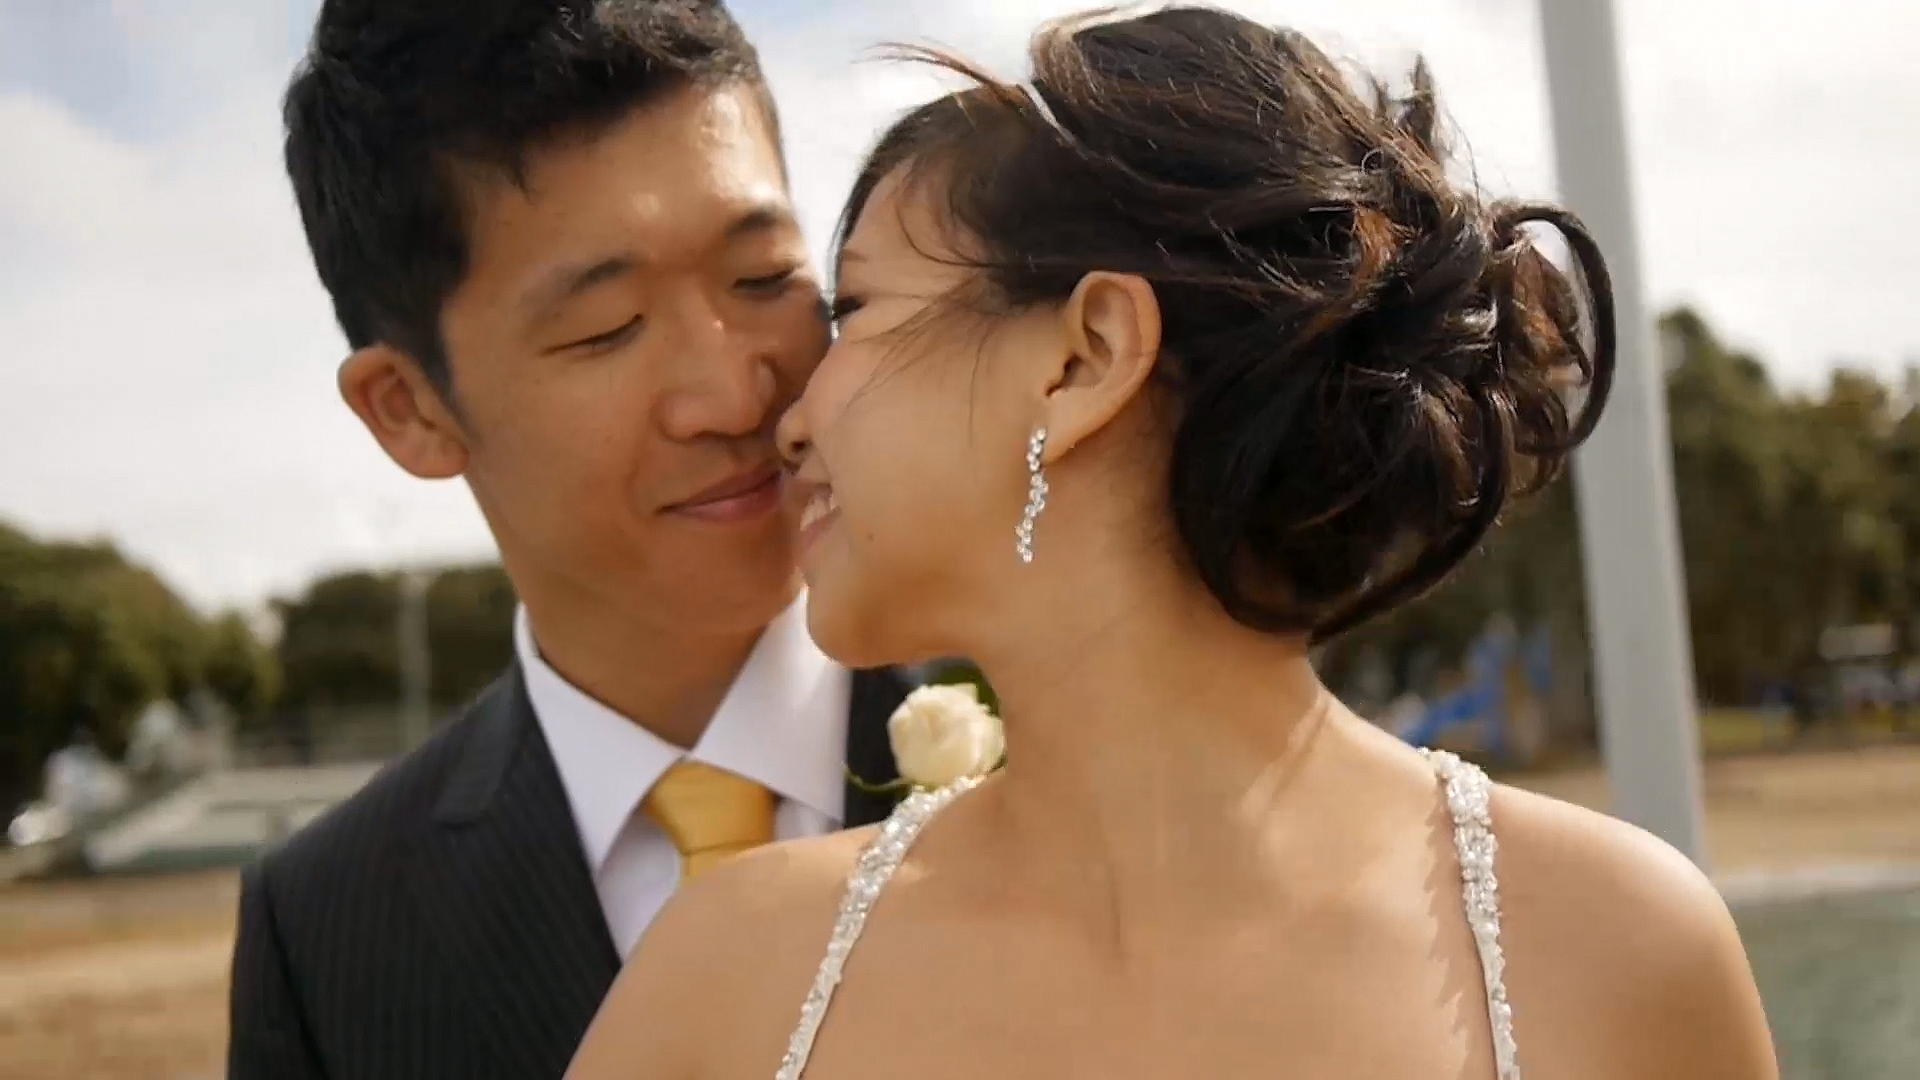 auckland wedding videographer